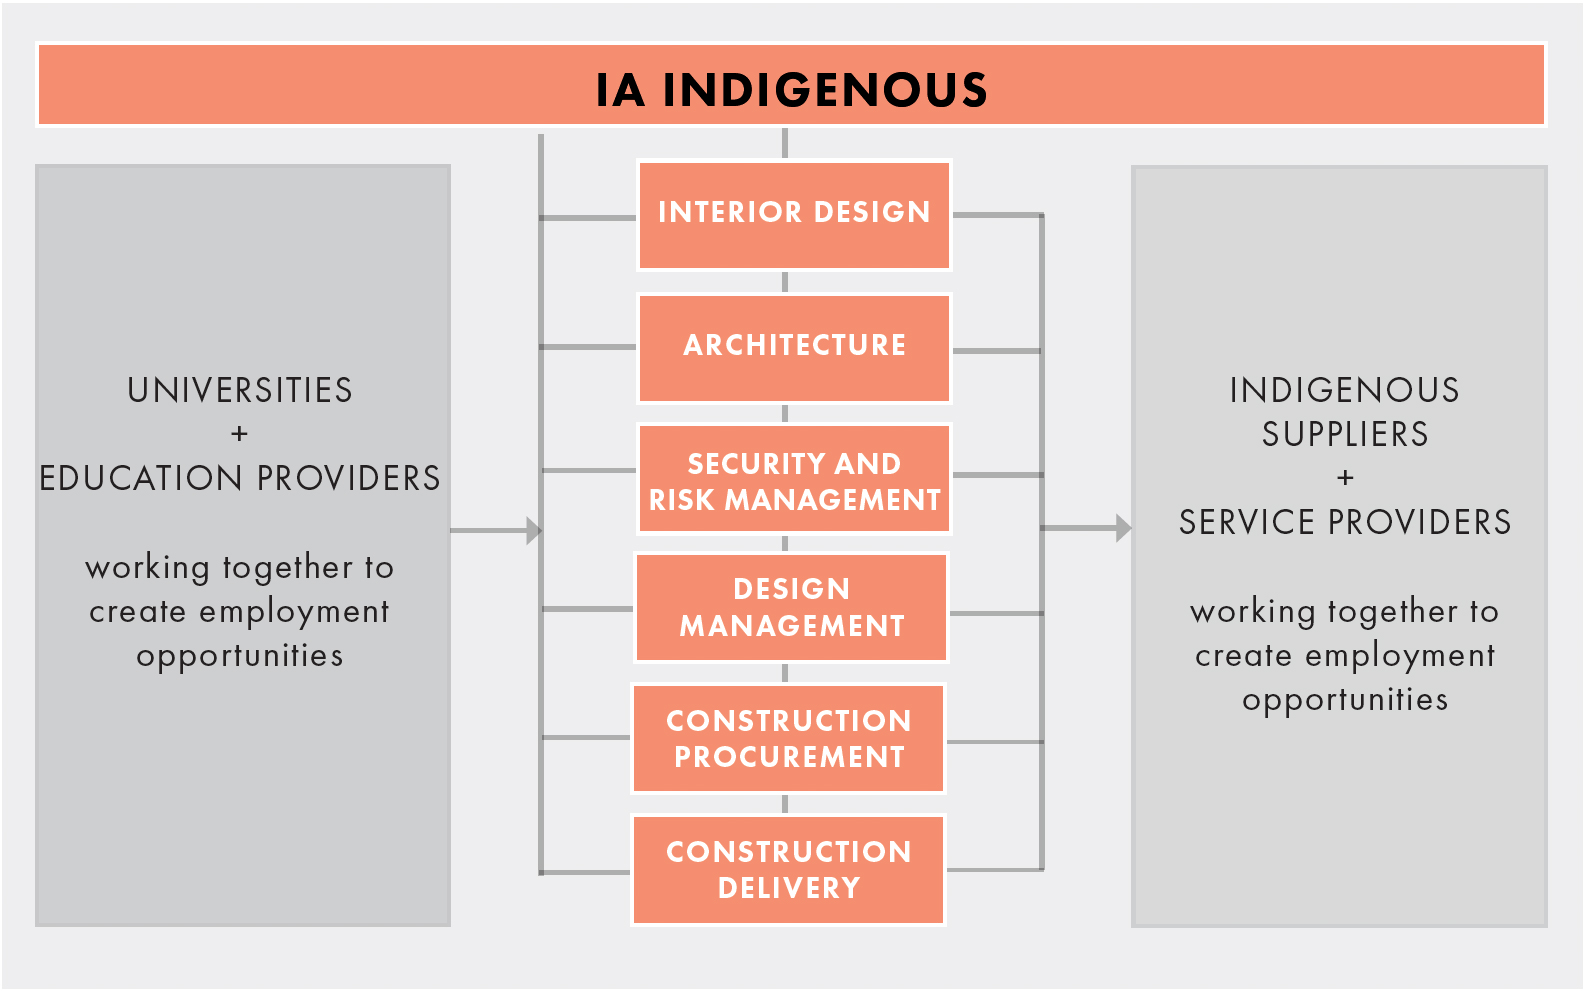 IA Indigenous Making Strides in the Australian Property Sector